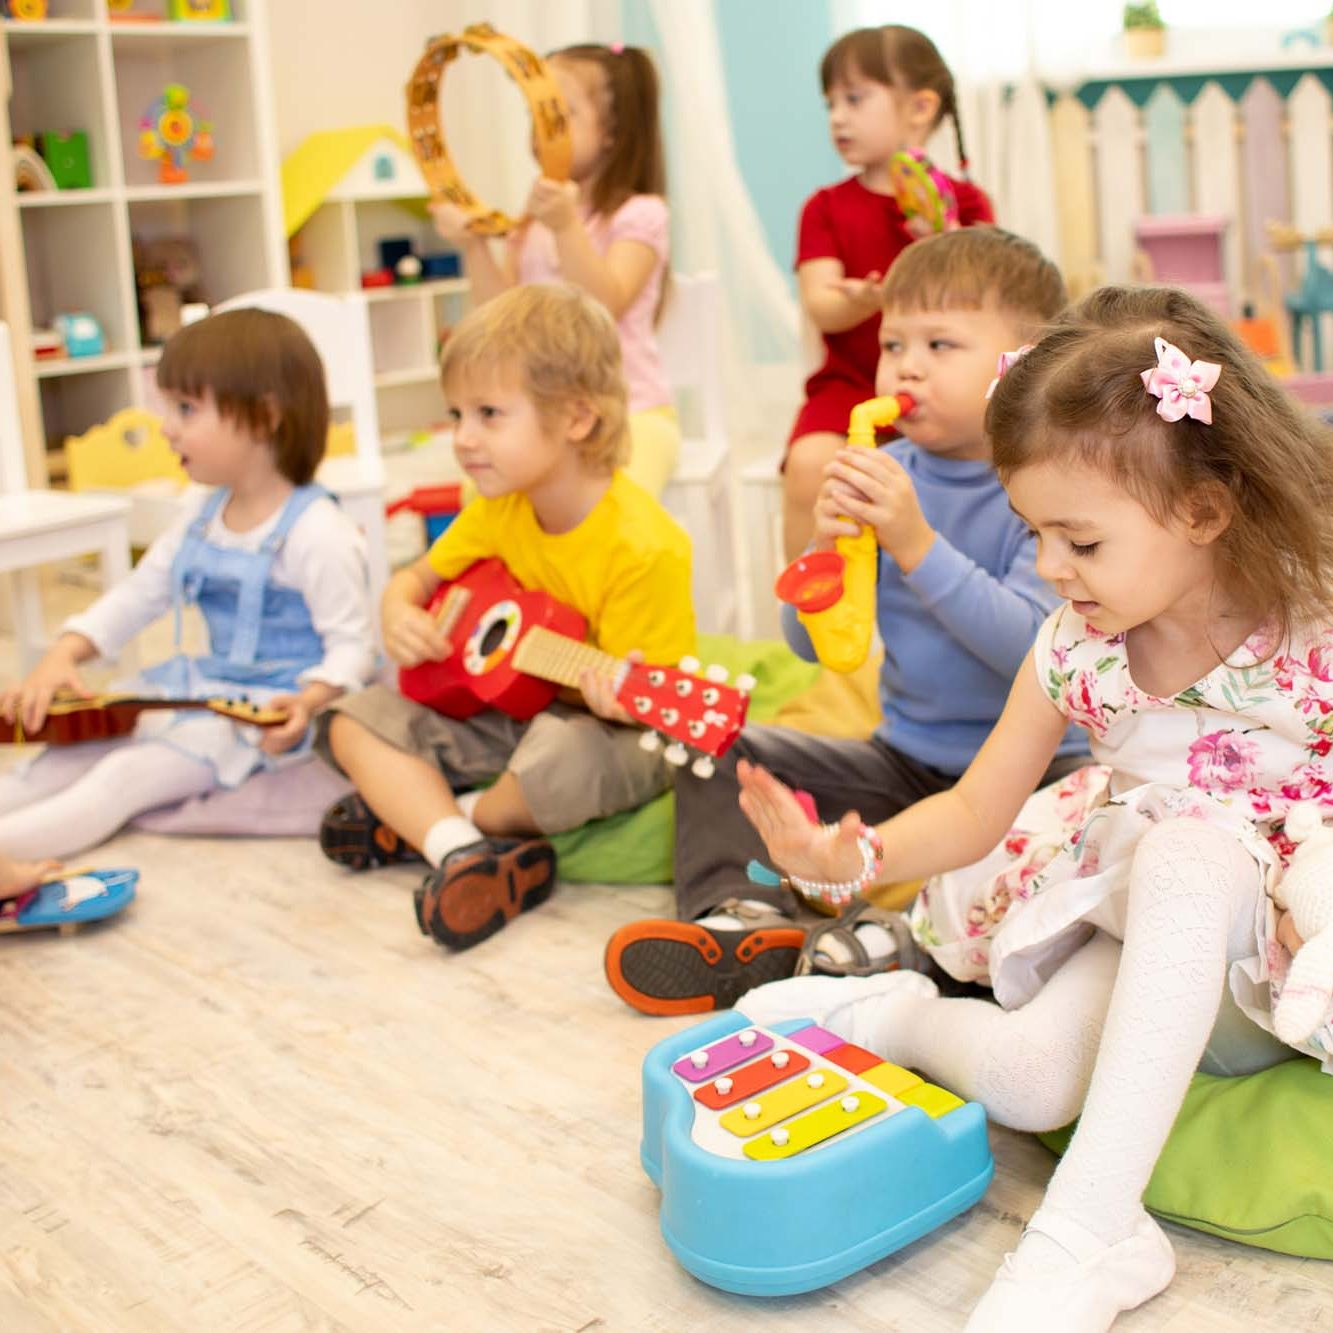 Children learning musical instruments on lesson in kindergarten or daycare